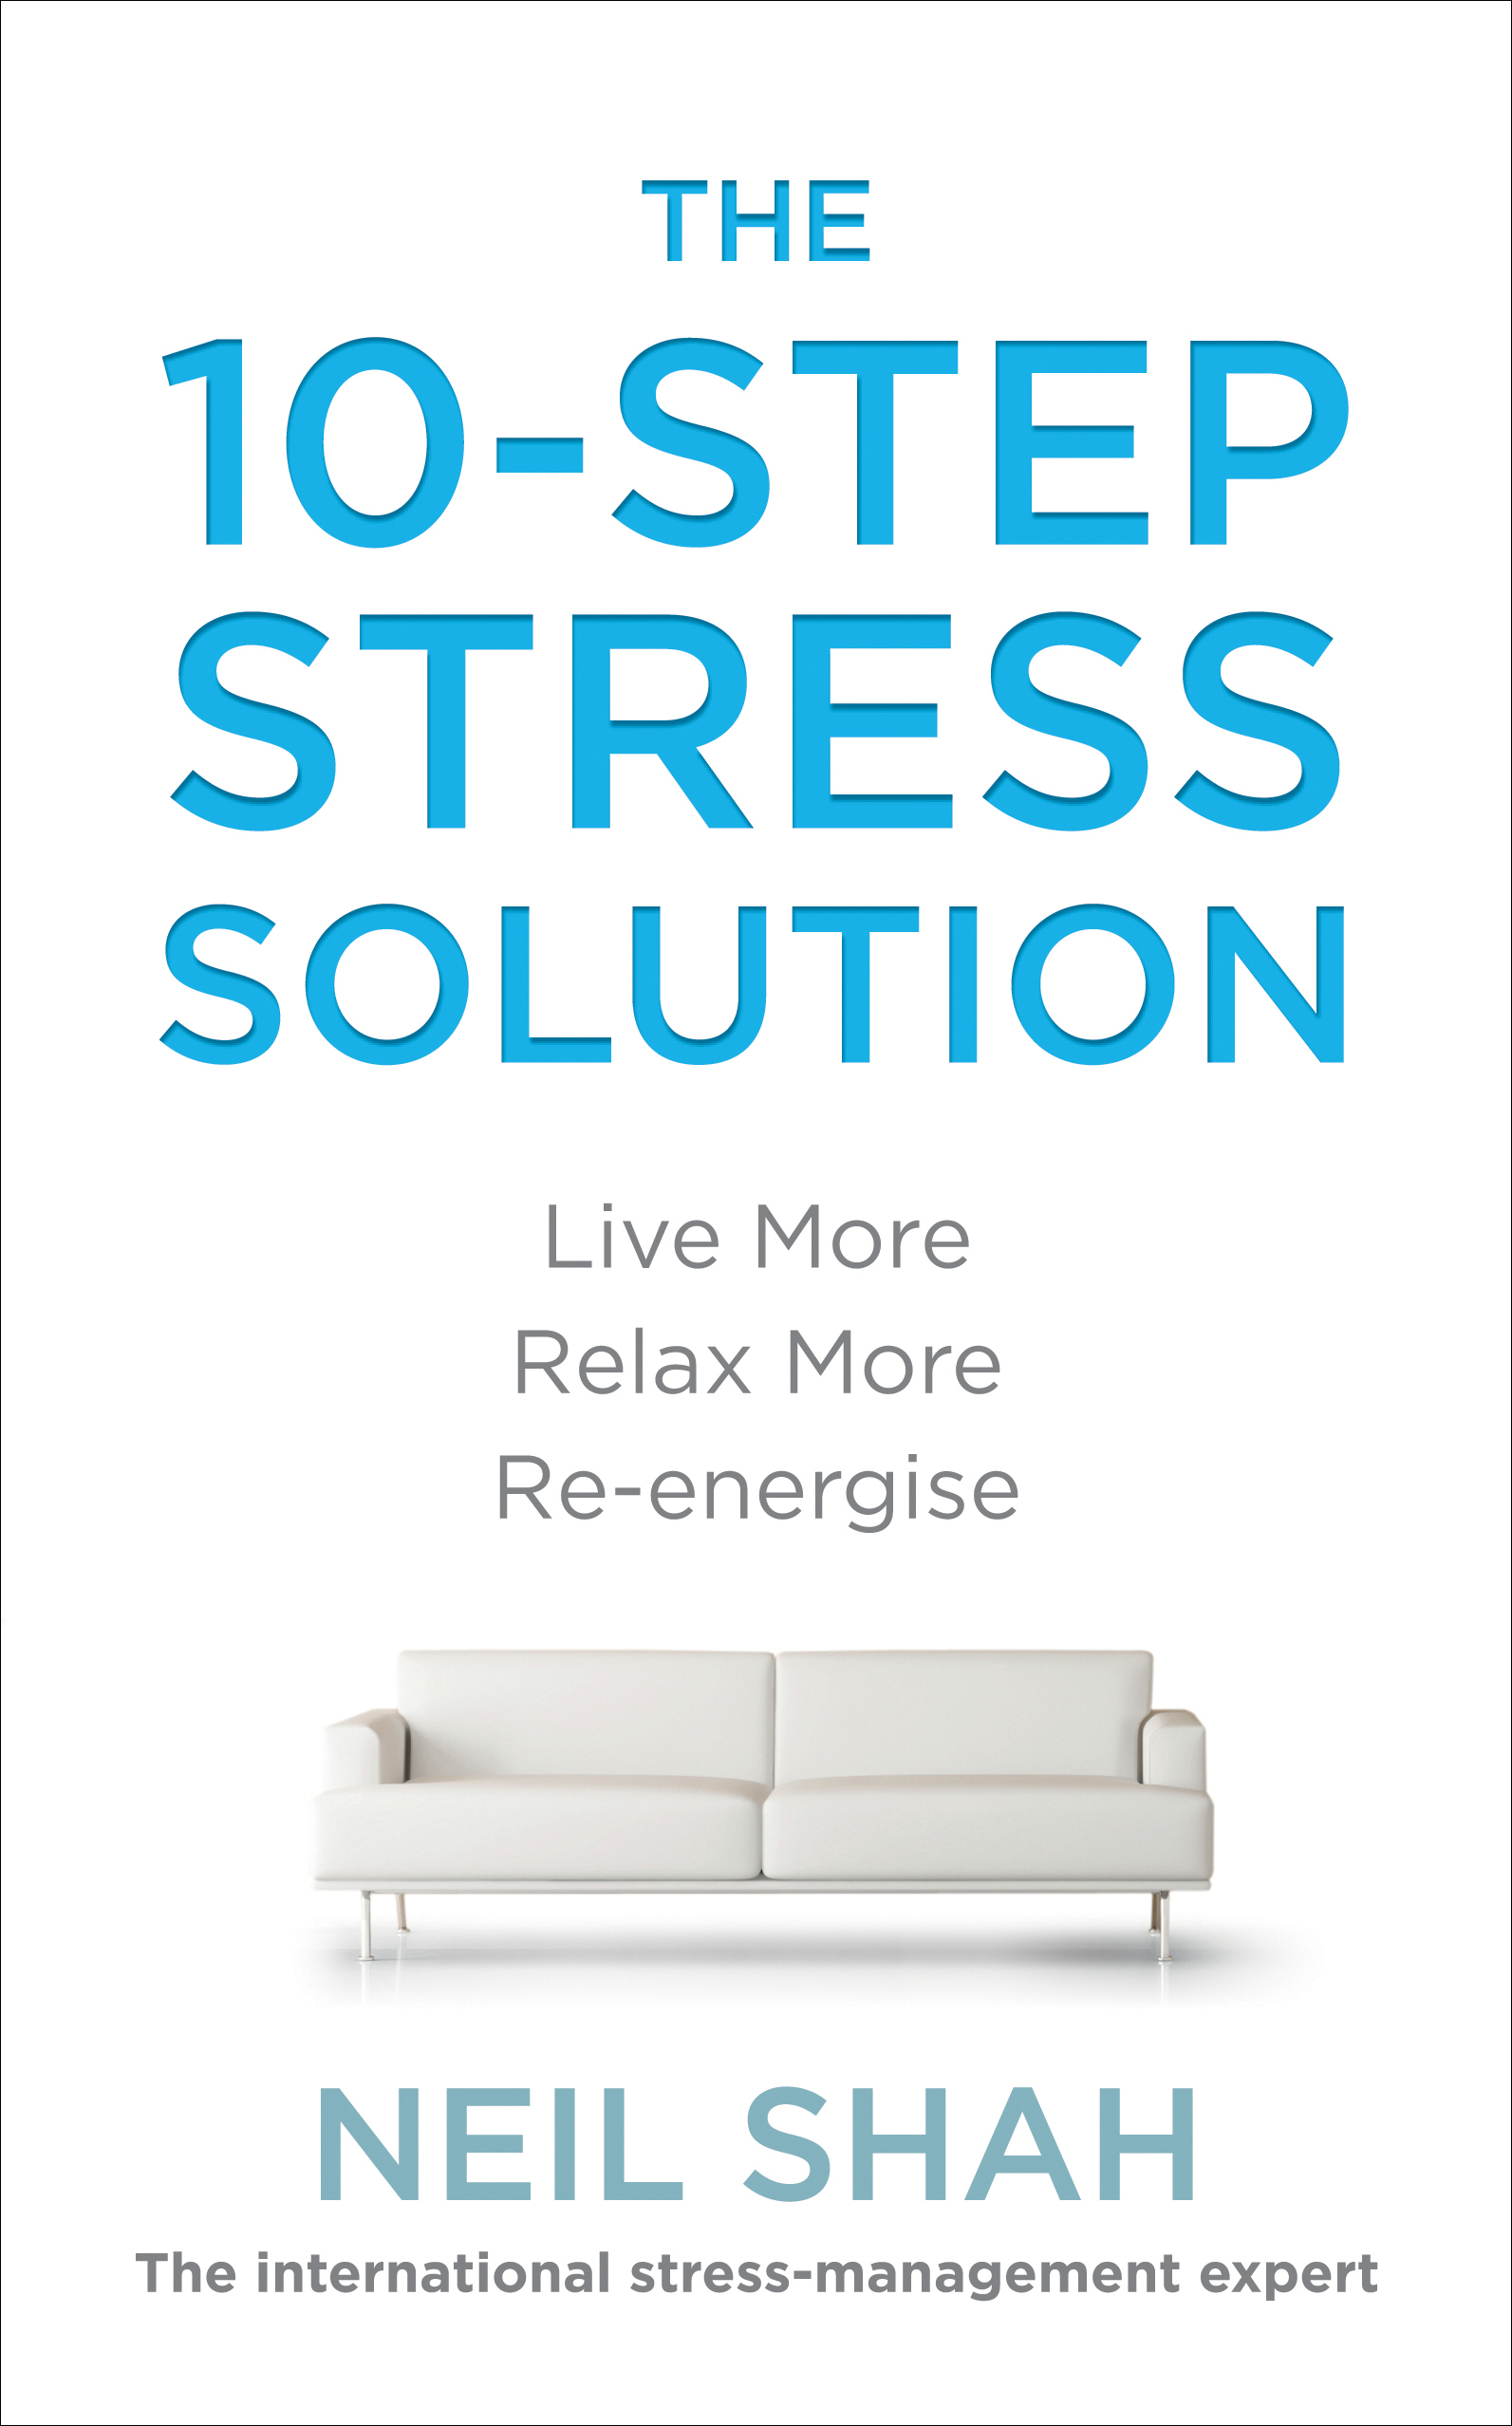 The 10-Step Stress Solution Live More,  Relax More,  Re-energise